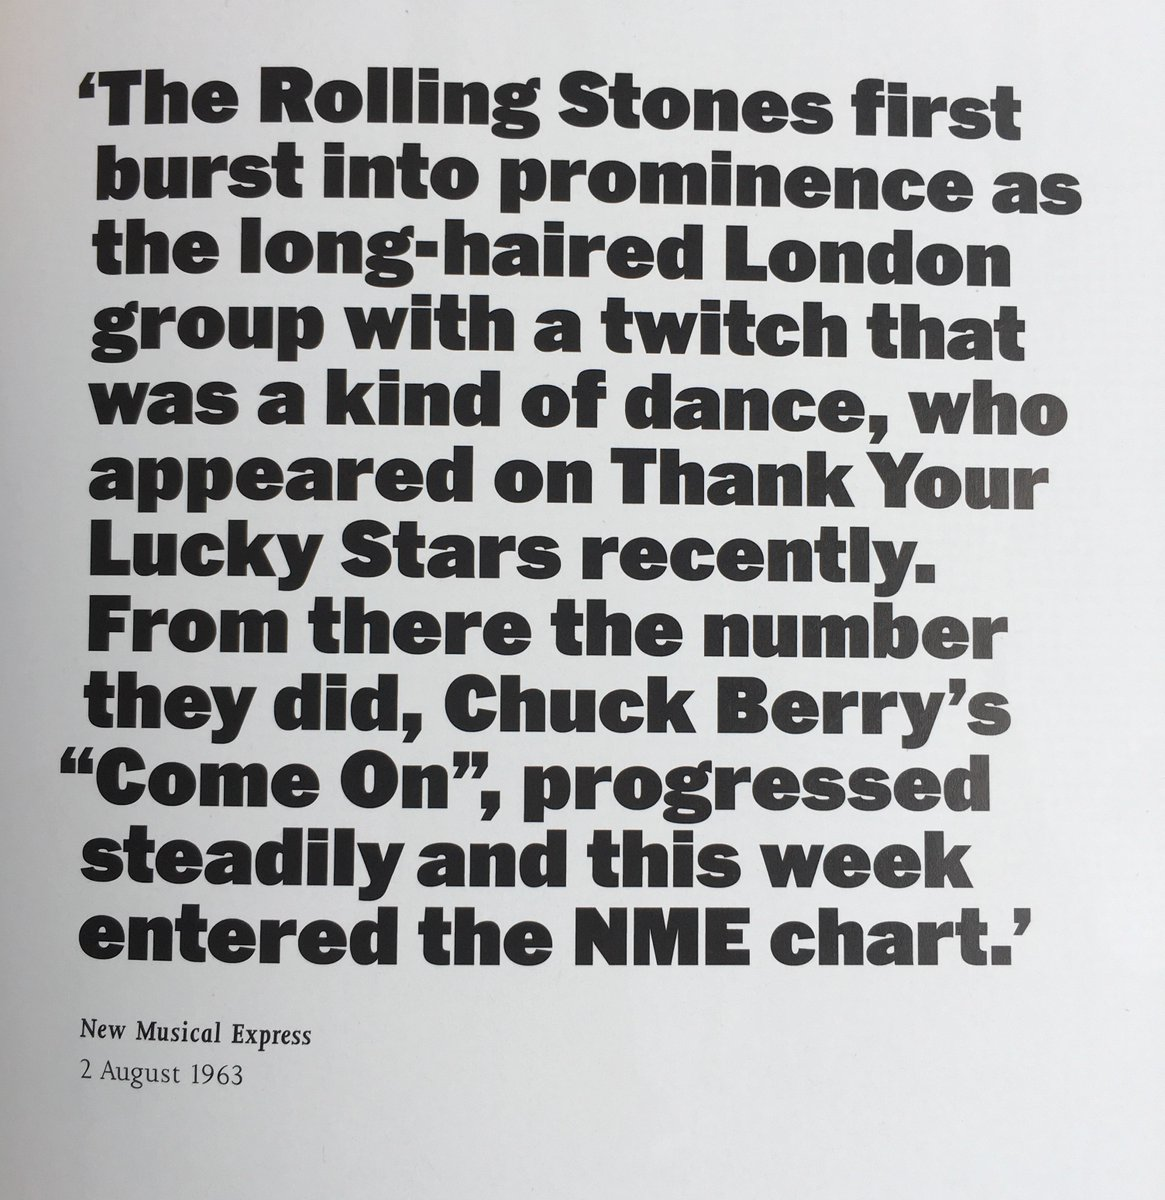 The Rolling Stones On Twitter Out Today Is On Air The Book Which Tells The Story Of The Stones And Their Rise To Prominence In The 60 S Https T Co U3ocdupcmc Https T Co Pqbifx7mjq